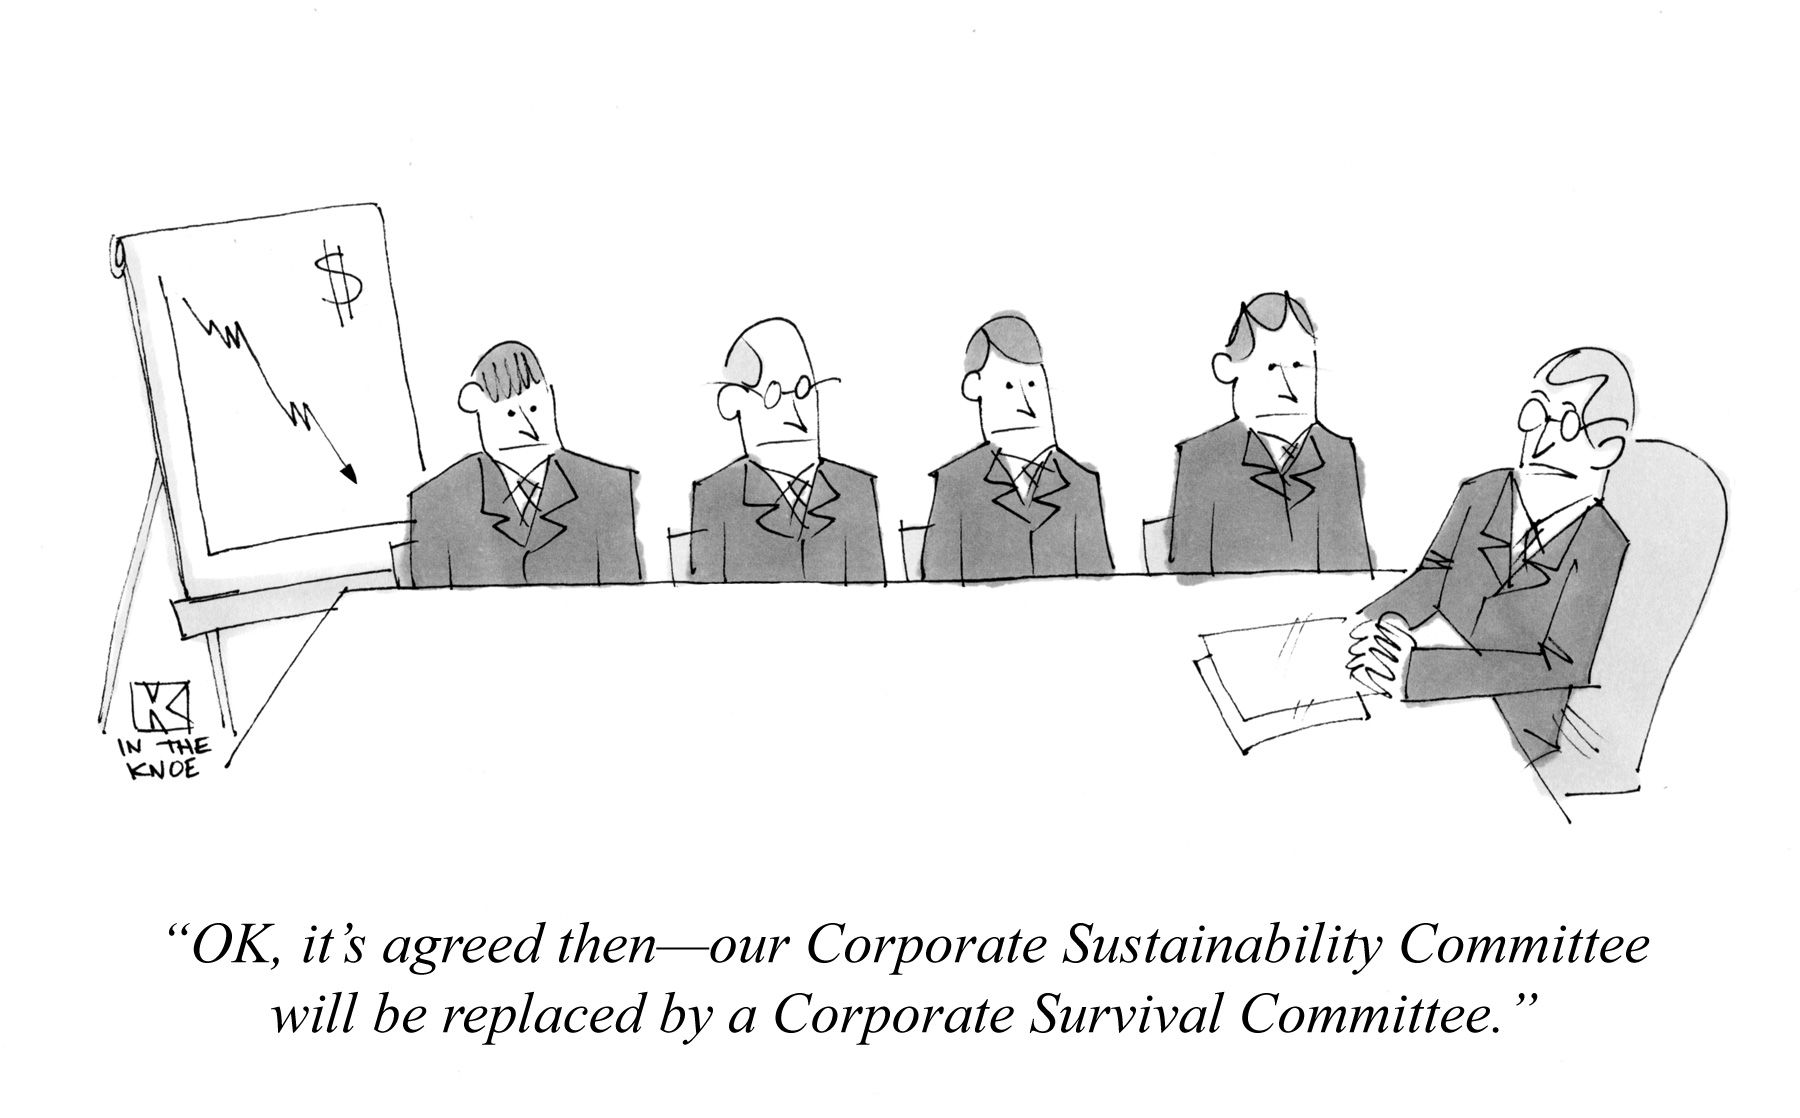 OK, it's agreed then--our Corporate Sustainability Committee will be replaced by a Corporate Survival Committee.